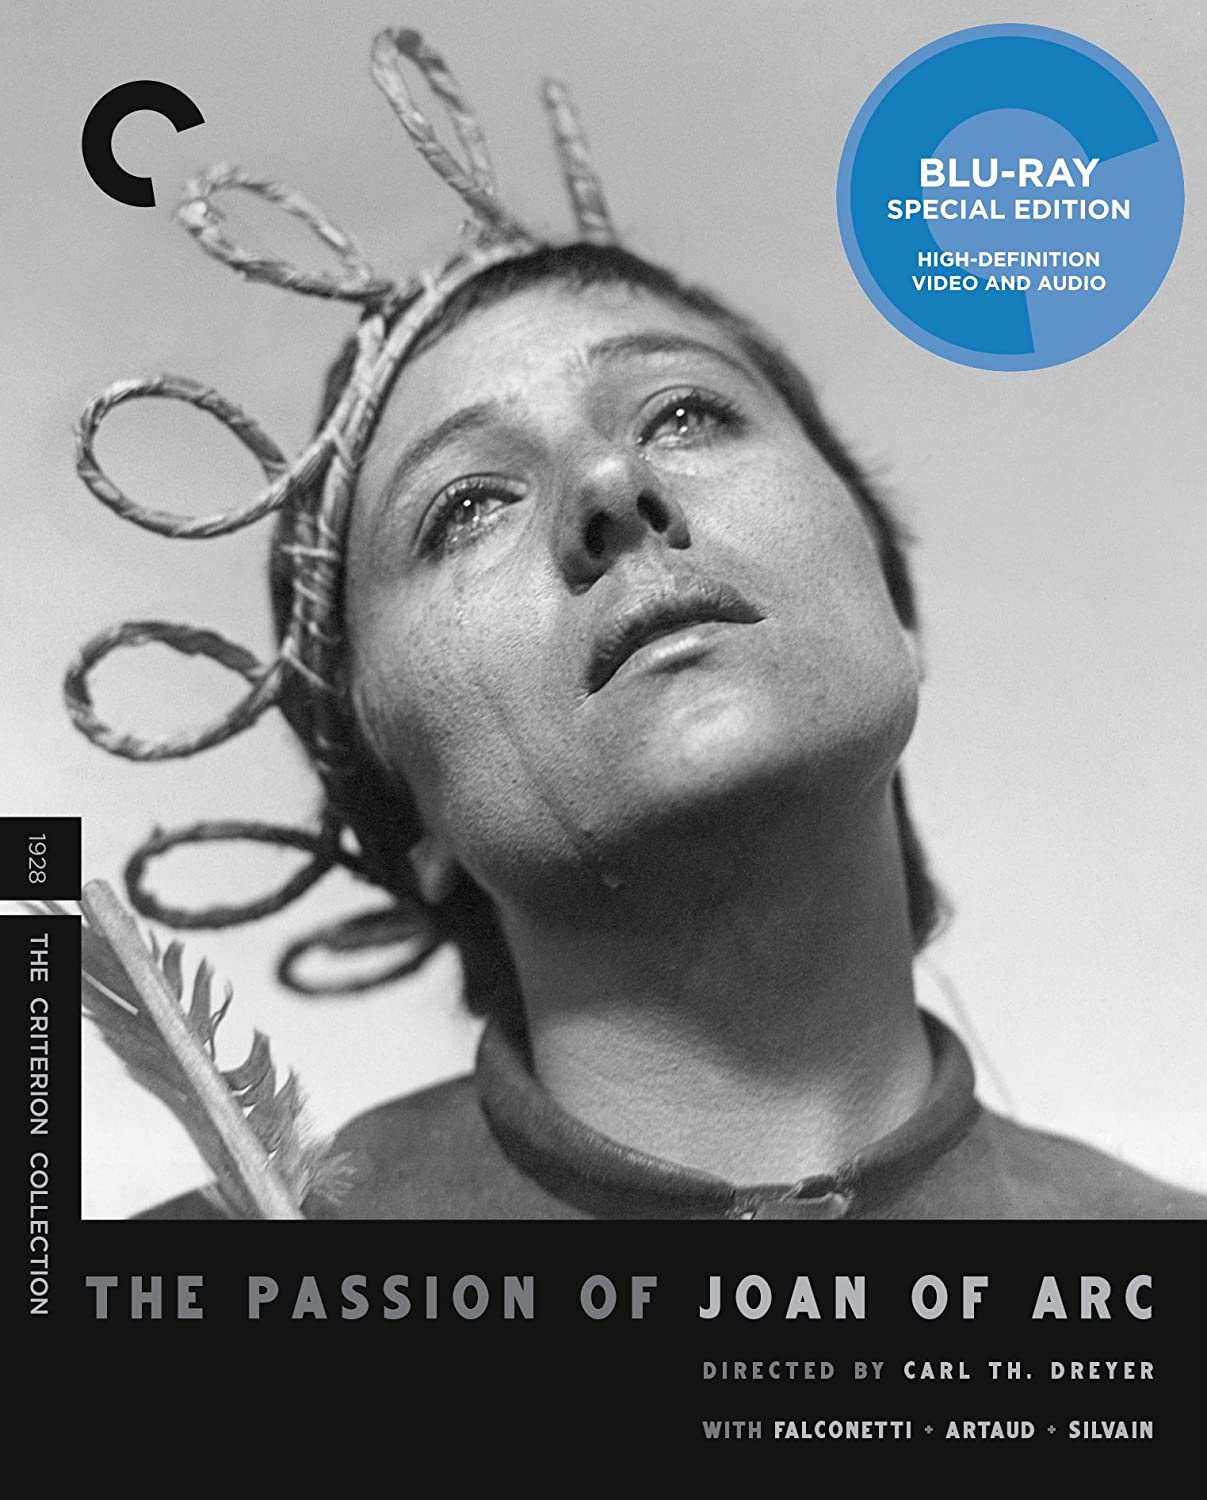 The Passion of Joan of Arc The Criterion Collection